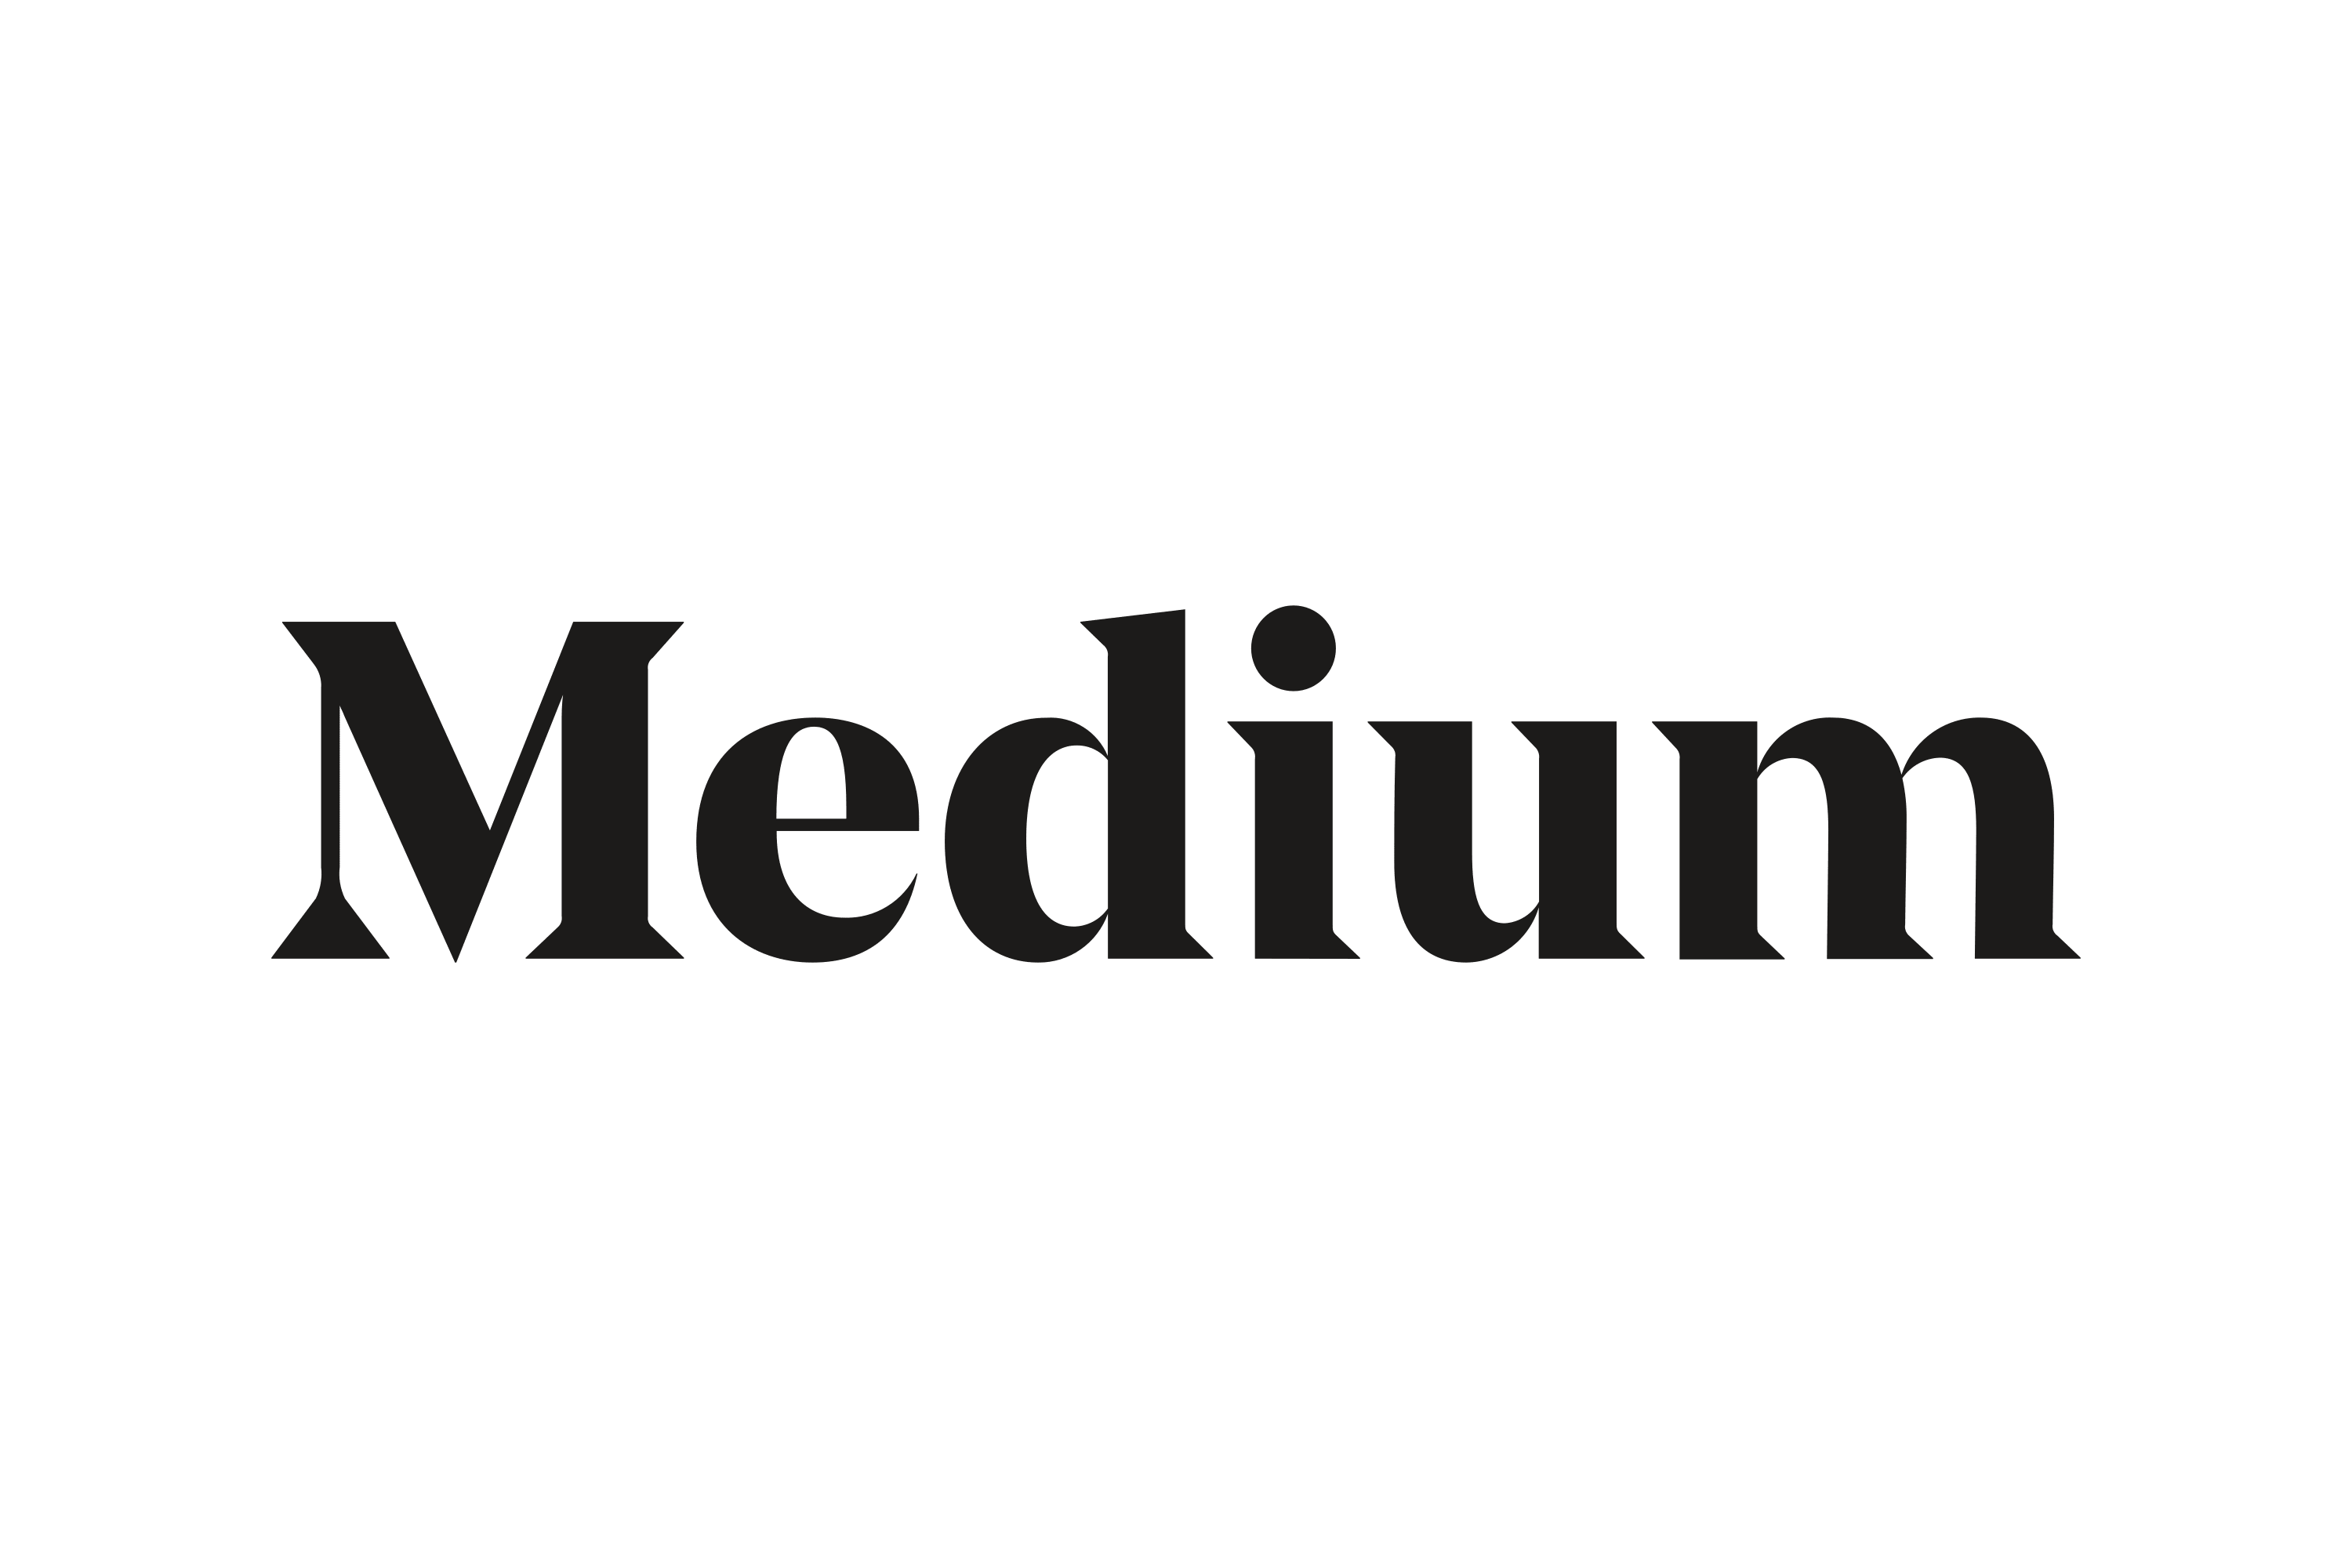 Medium_Logo-min.png